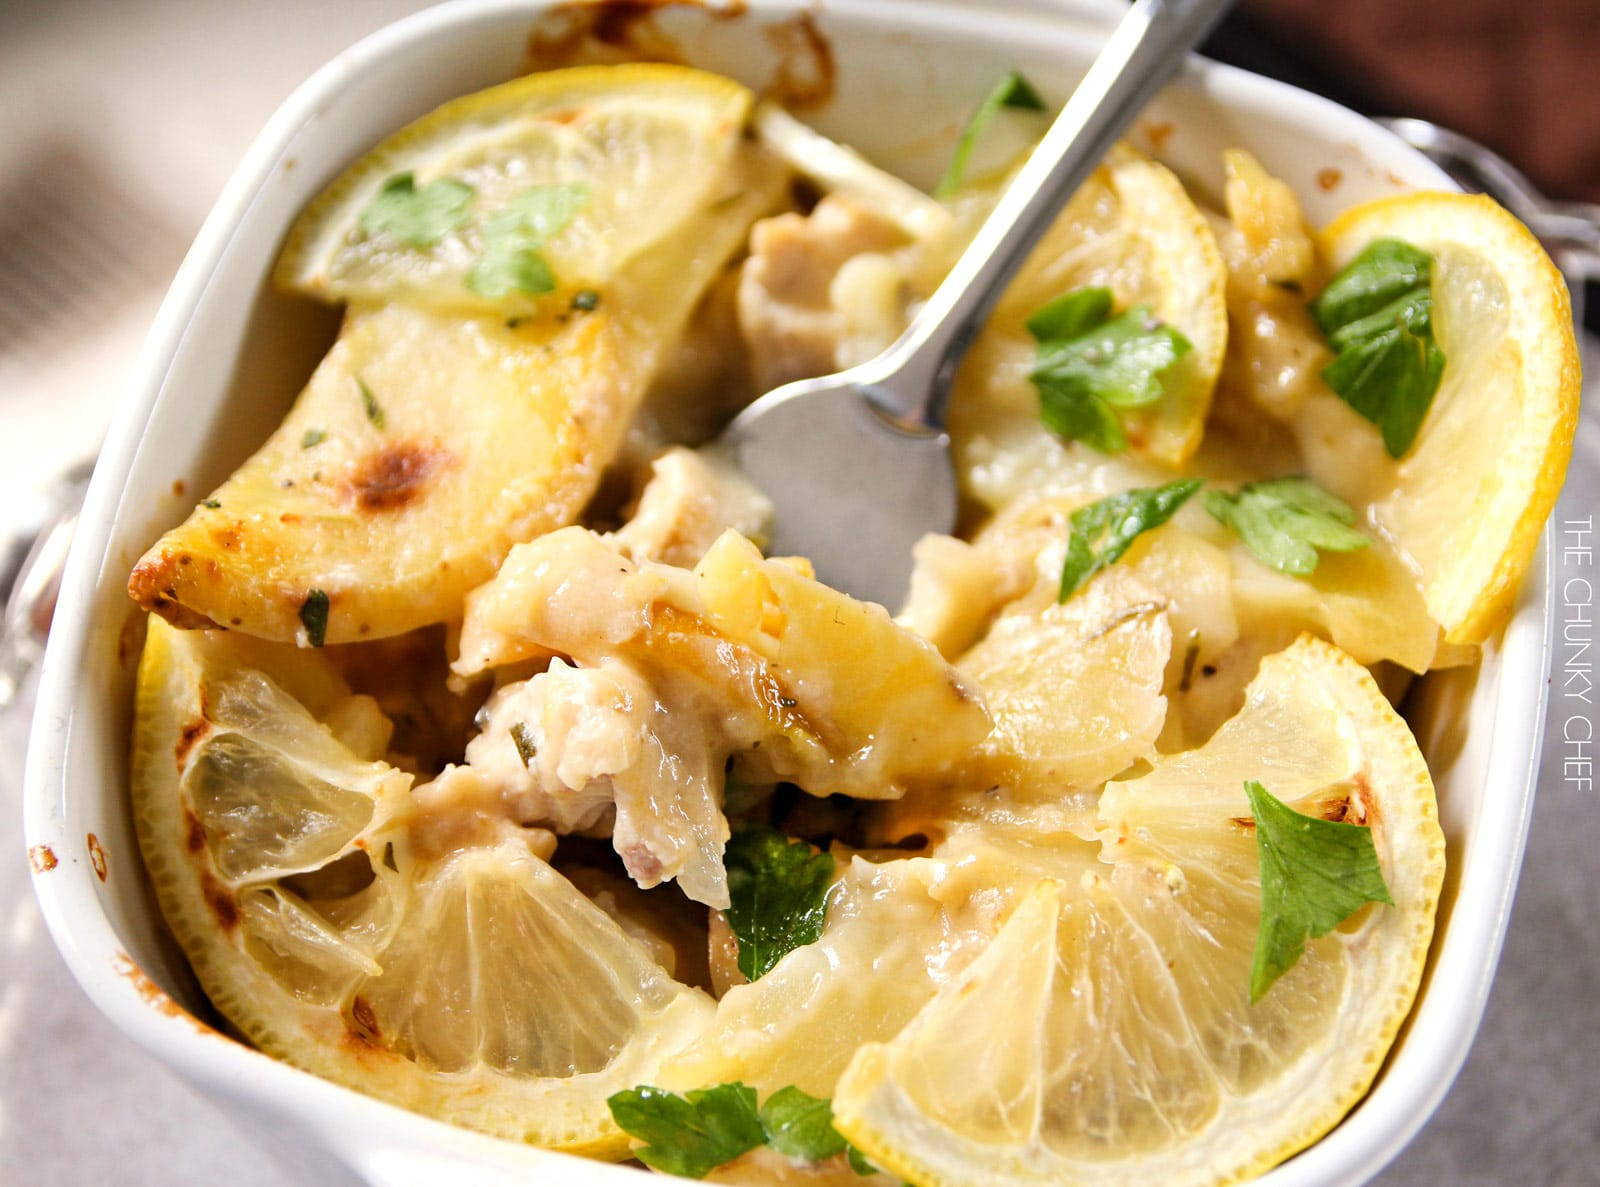 Lemon Chicken and Potato Bake   Chicken and potatoes are baked with lemon slices in a creamy casserole that's sure to fill you up and make you smile!   http://thechunkychef.com